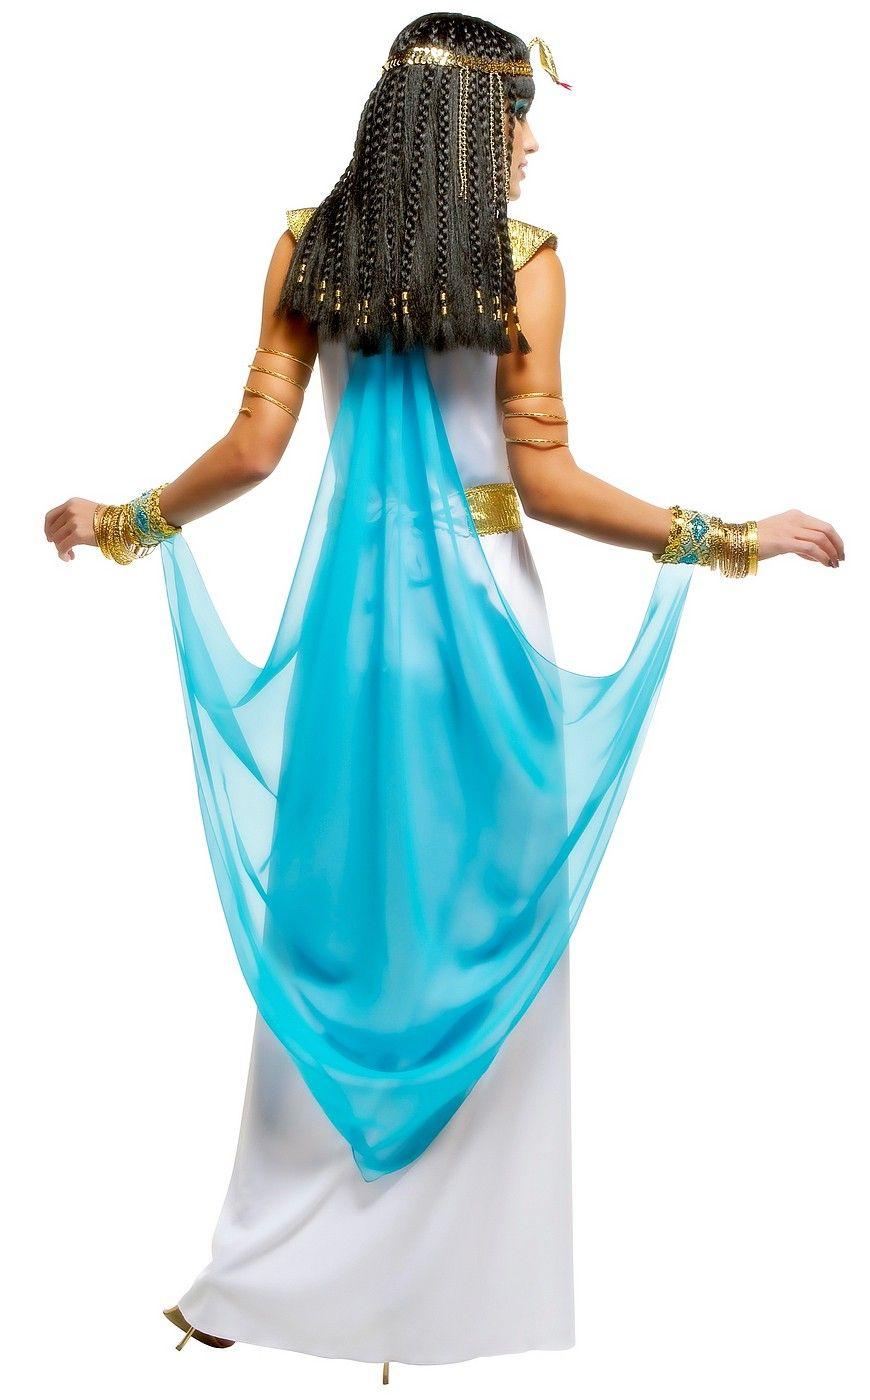 queen cleopatra costume oya costumes costumes pinterest kost m fasching und gypten. Black Bedroom Furniture Sets. Home Design Ideas